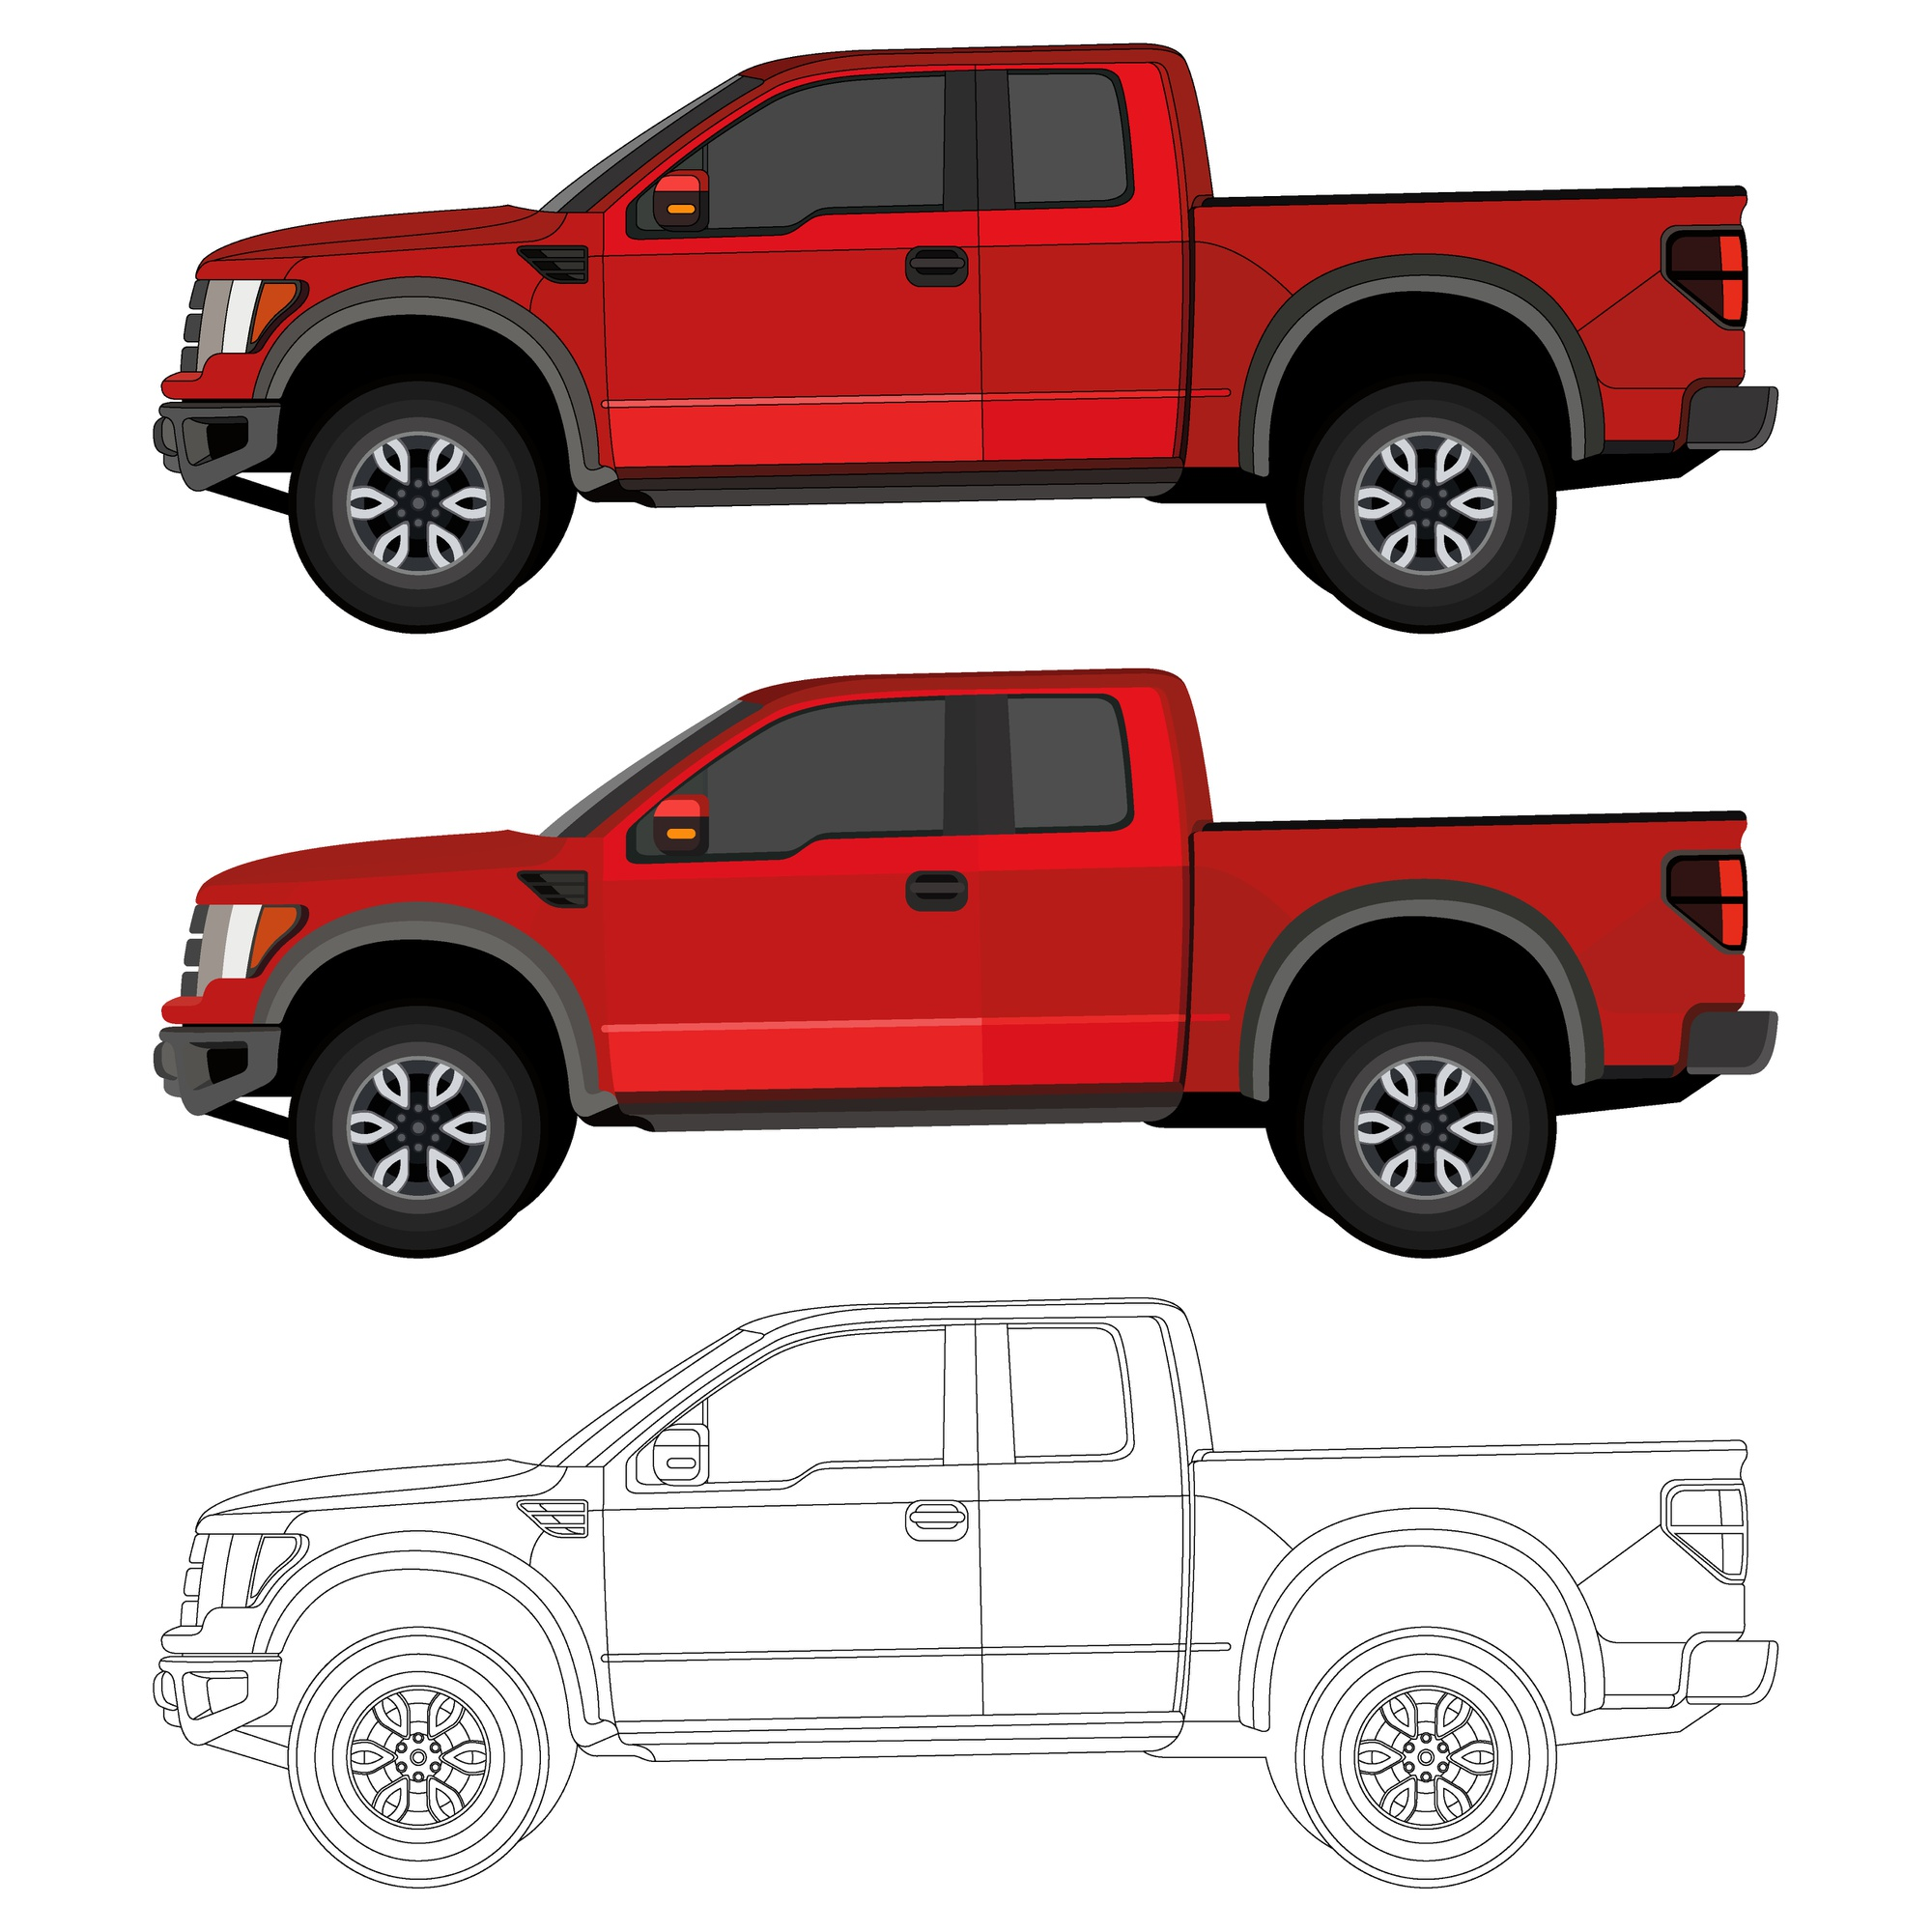 Realistic cool red truck with details